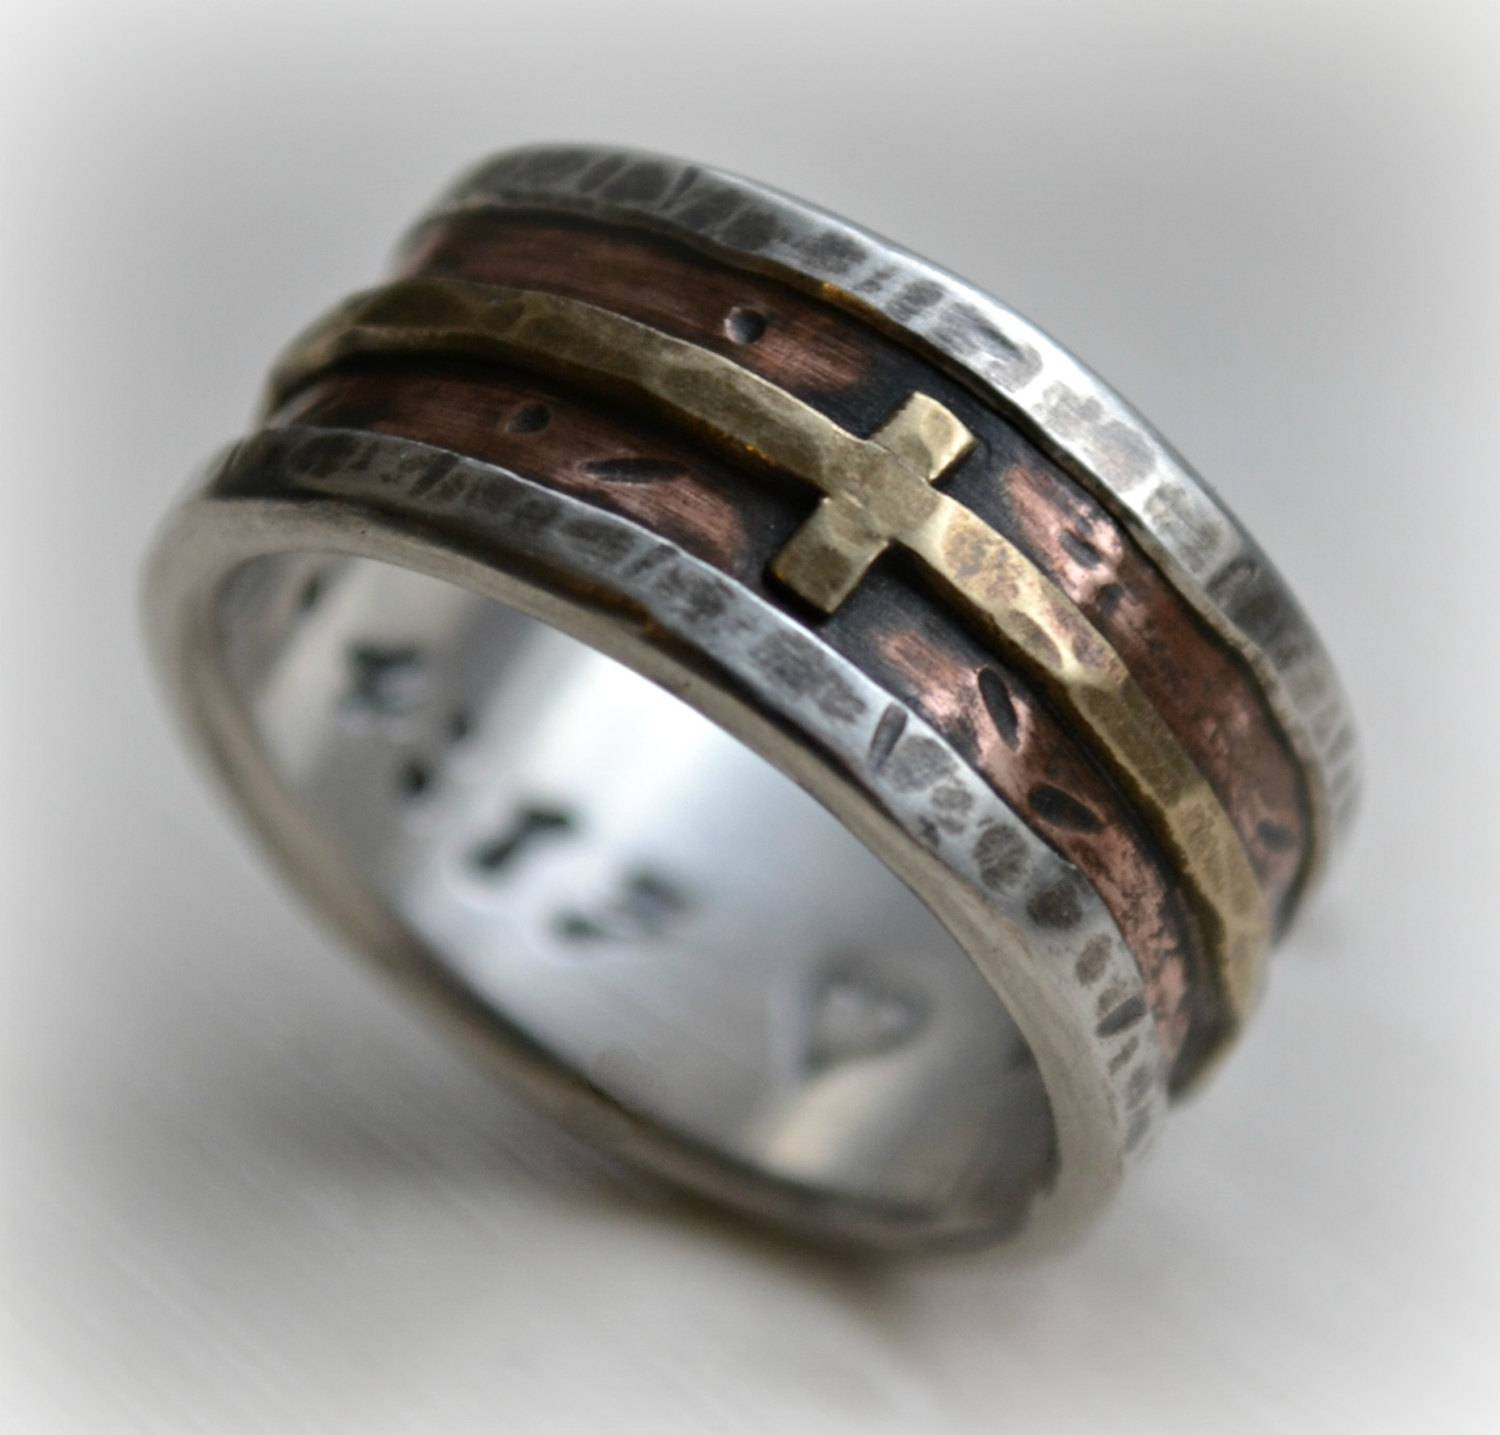 Mens Wedding Band Rustic Fine Silver Copper And Brass Cross Intended For Men's Wedding Bands With Crosses (View 11 of 15)